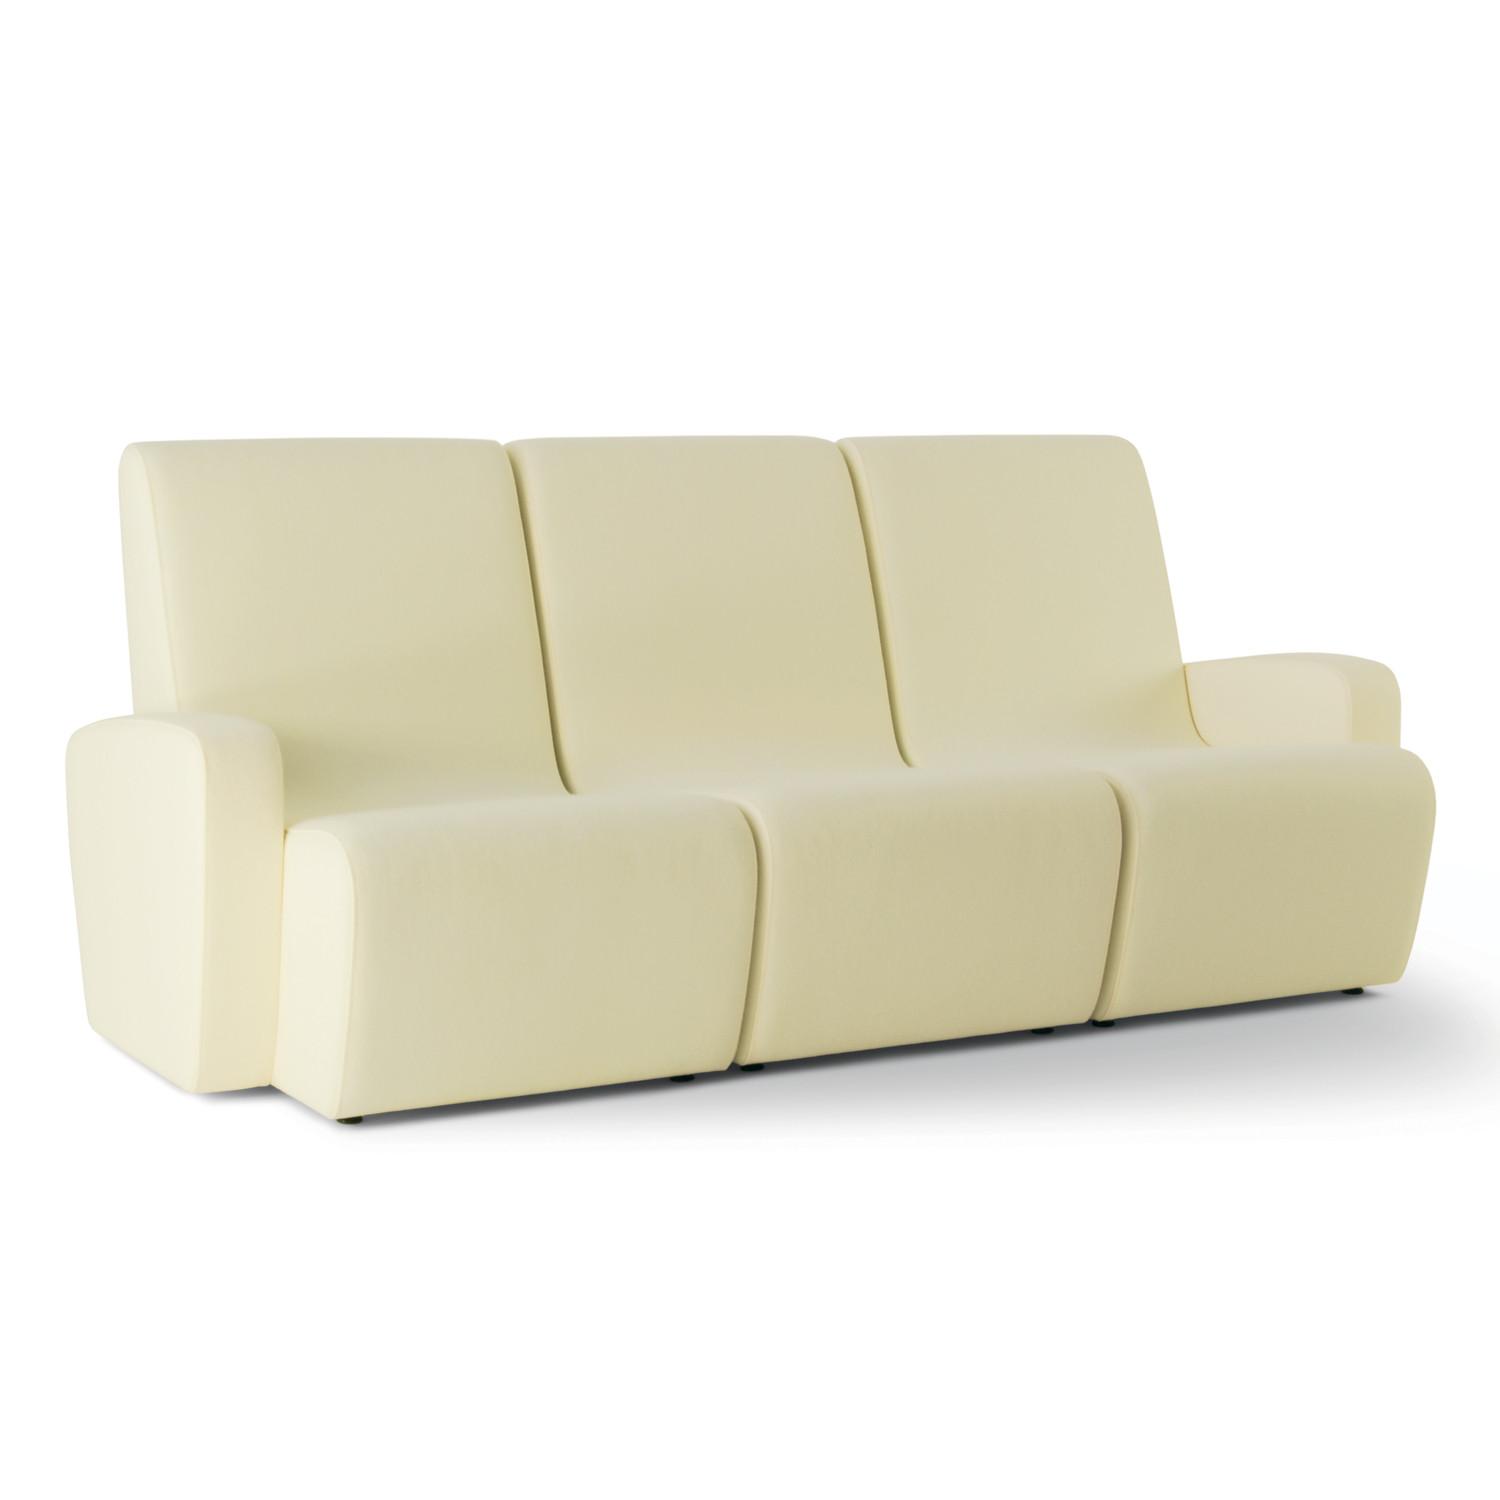 HM55a chair, HM55b and HM55c Seating Units